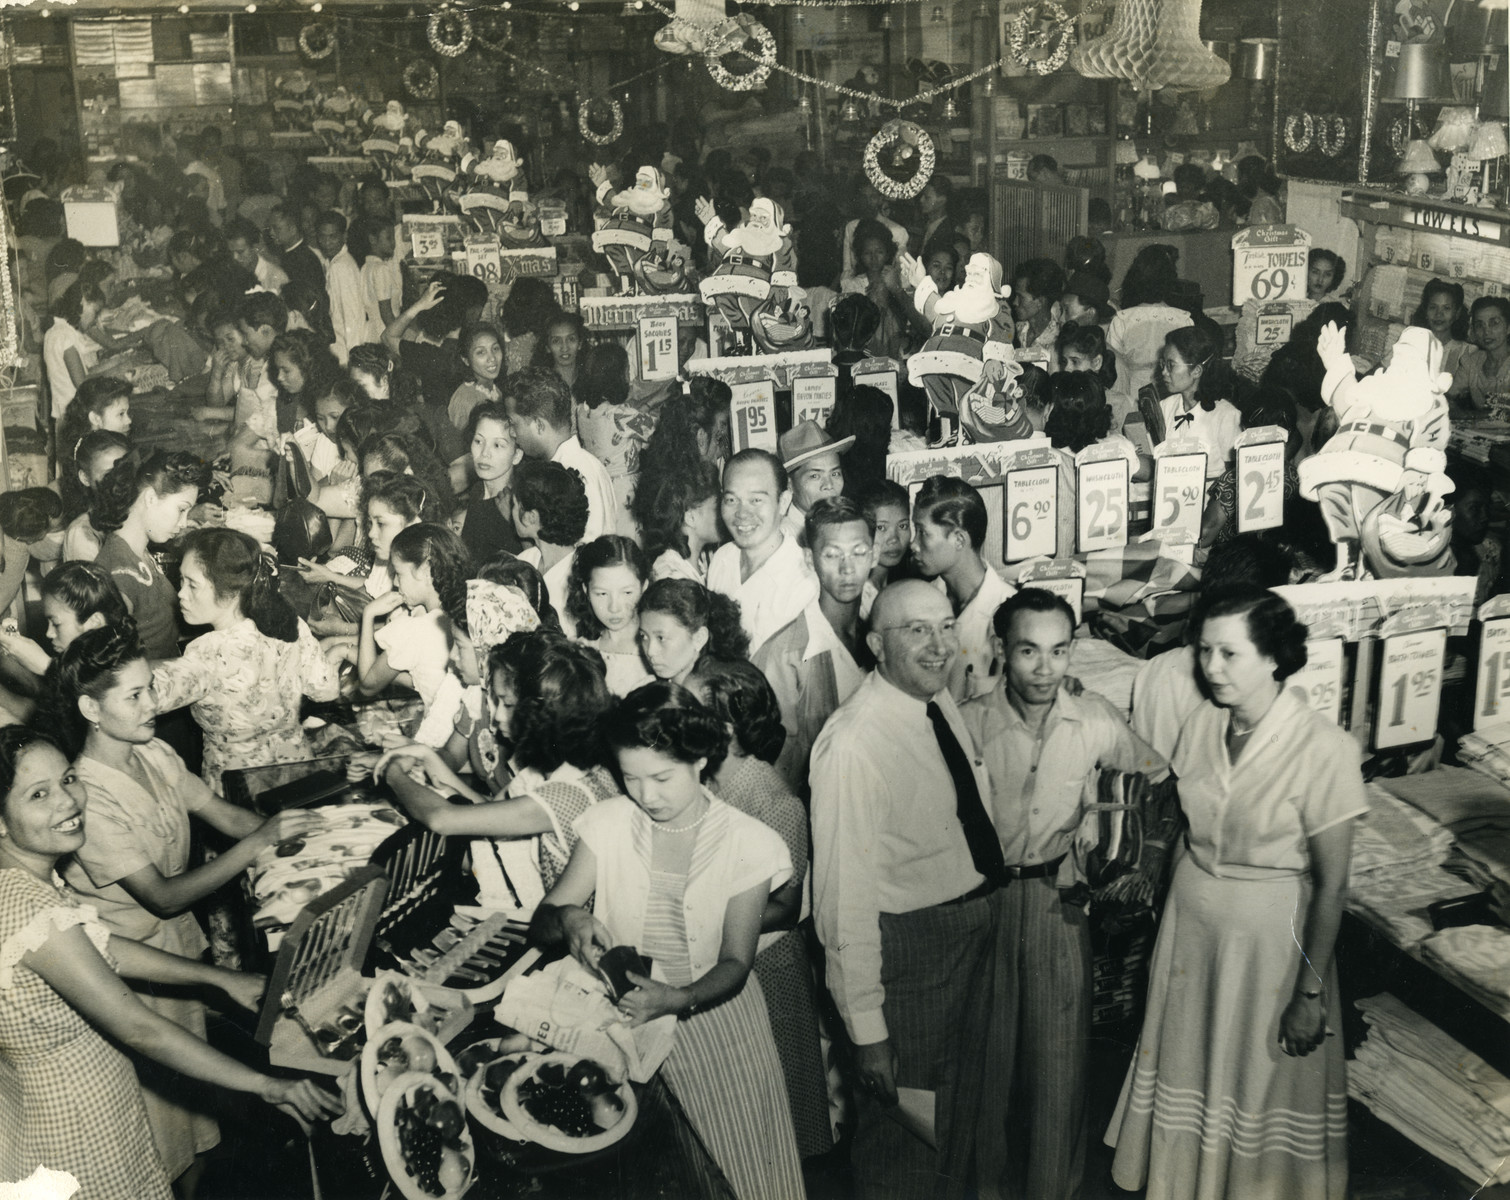 Saul and Erna Cassel (bottom right) work in the Berg department store.  Their assistant Pedro stands between then.